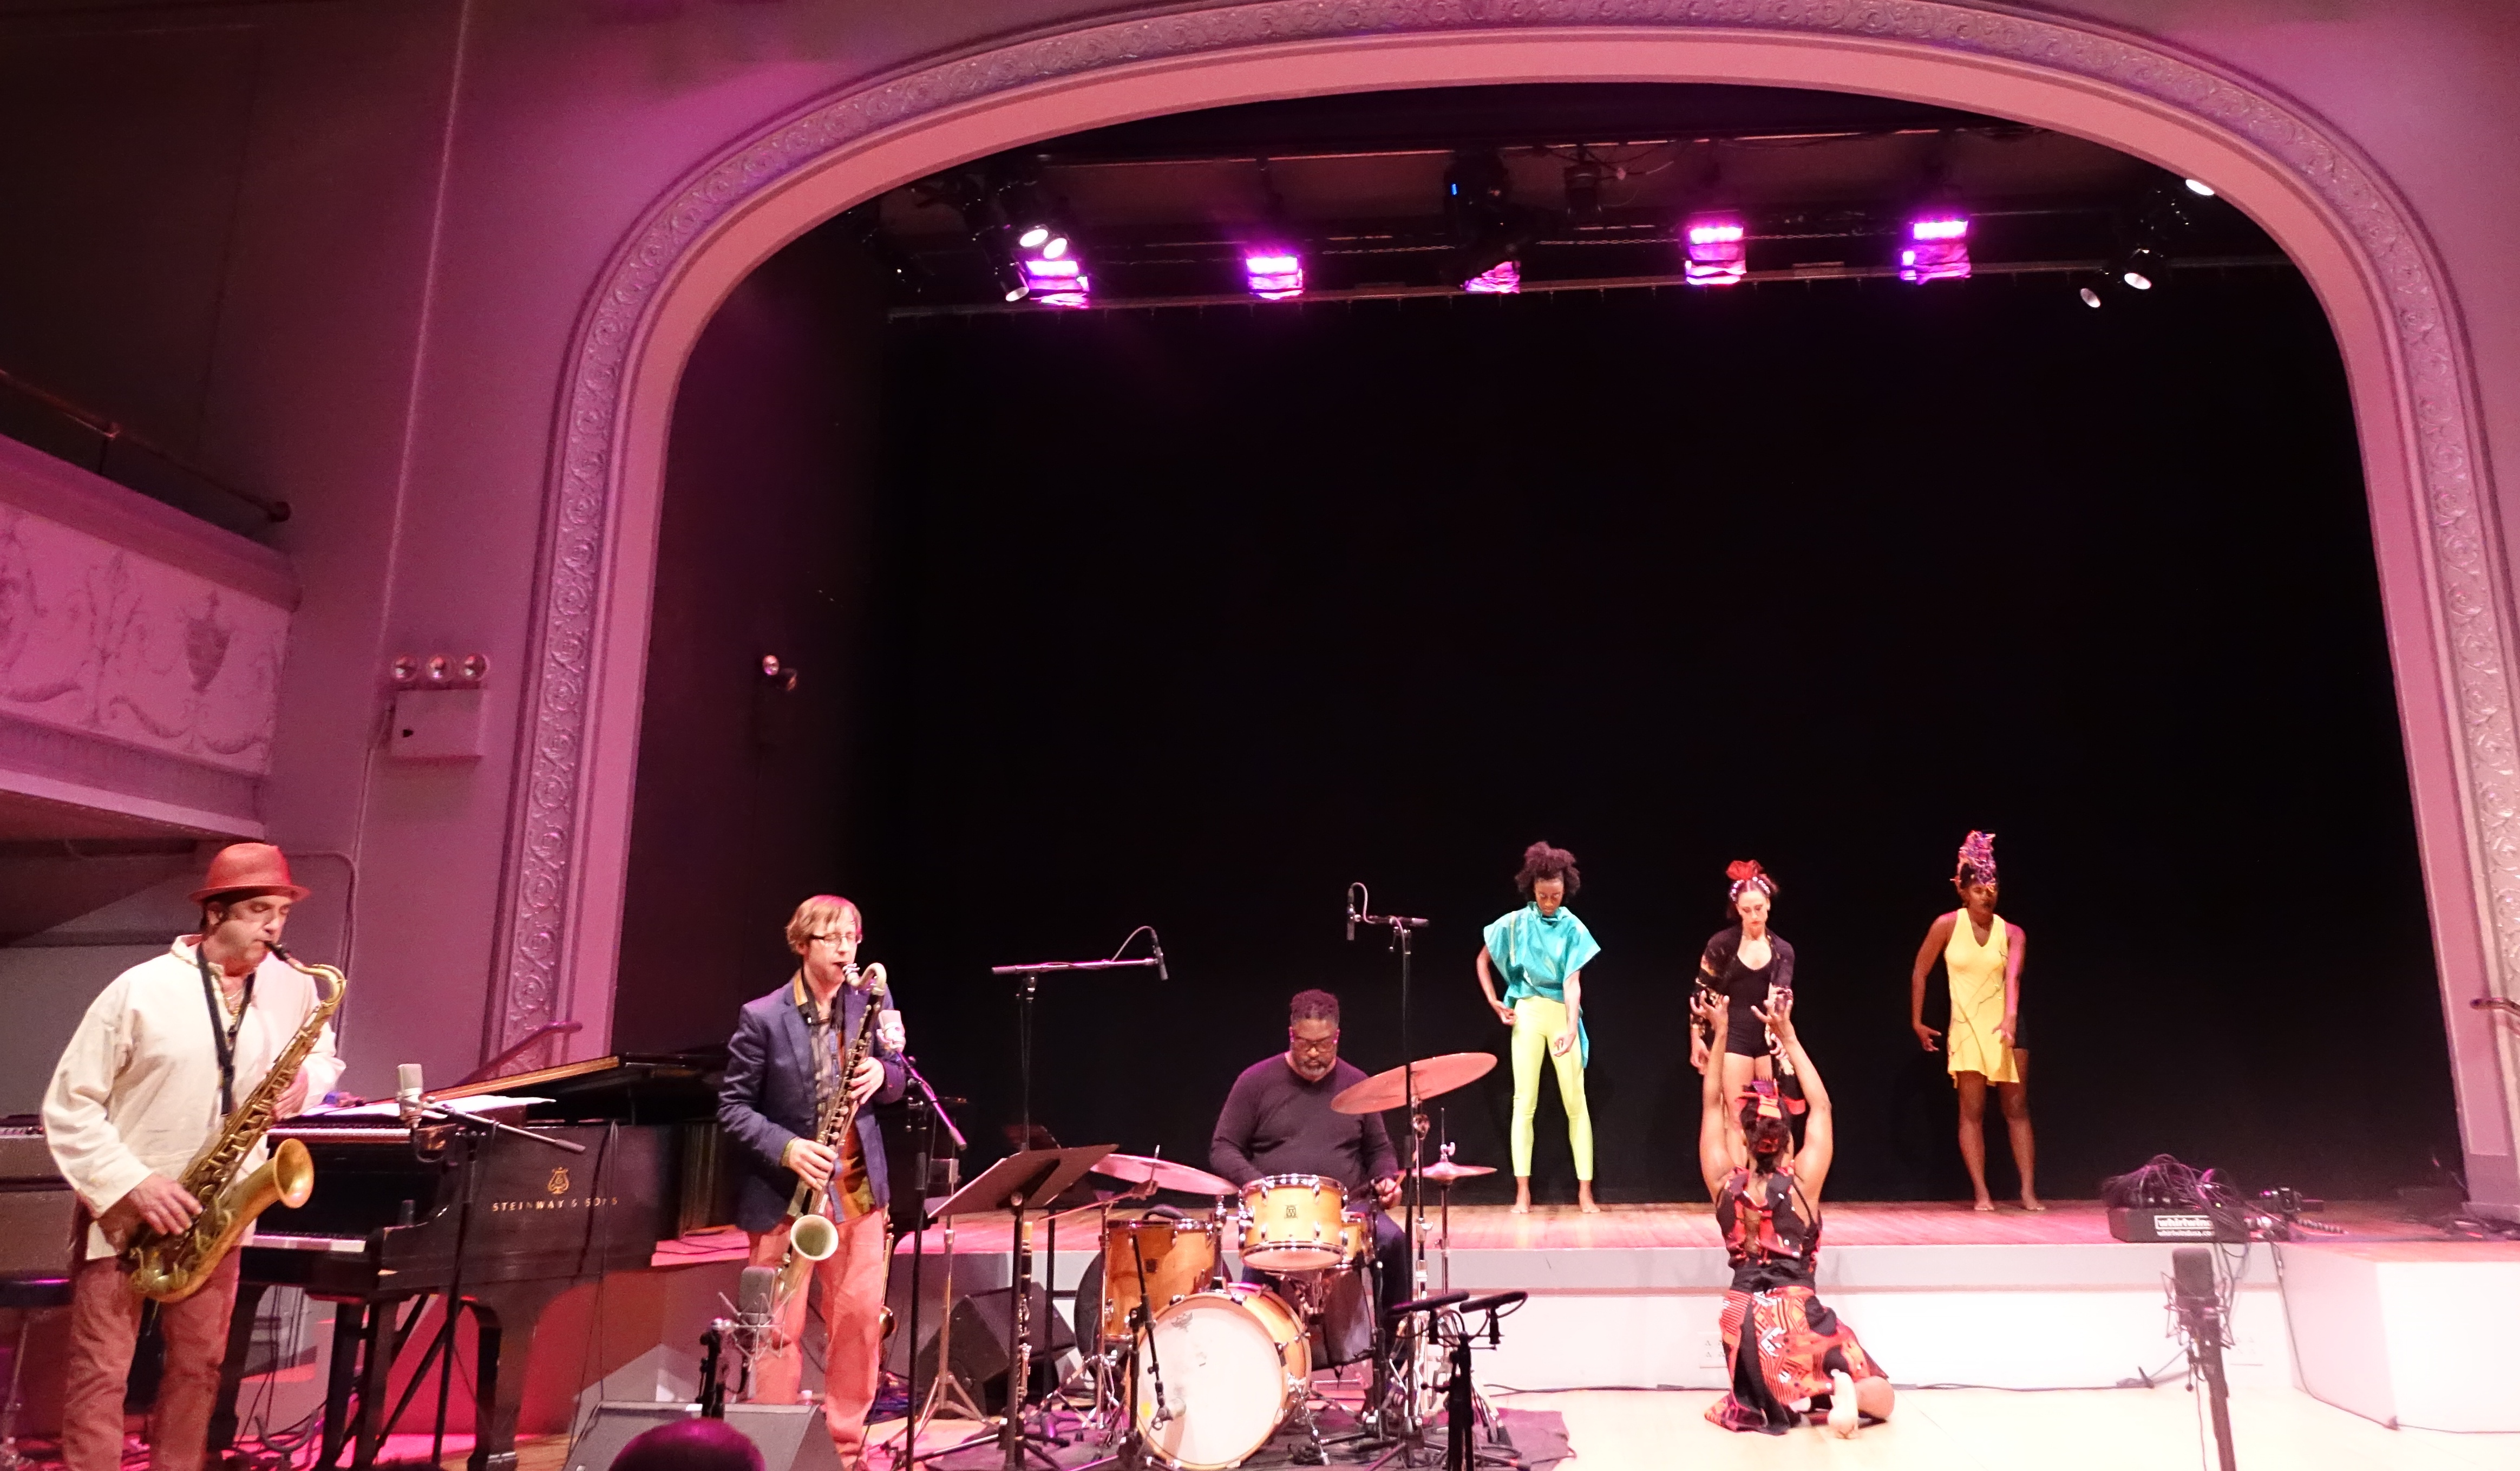 Davalois Fearon Dance at the Vision Festival in Roulette, Brooklyn in June 2019